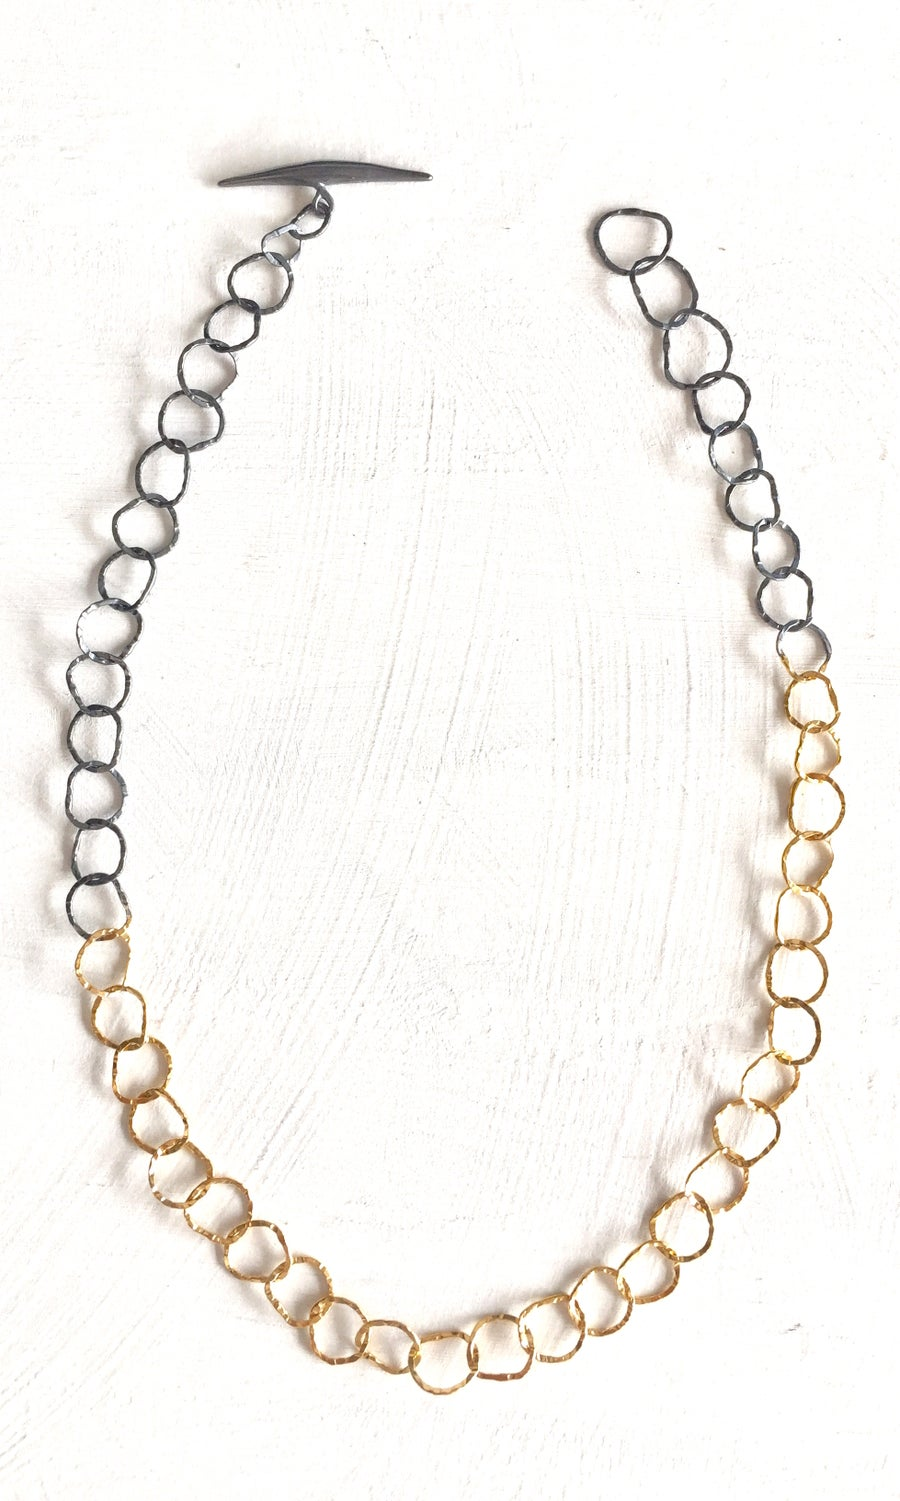 Image of Afiok single necklace combination oxidised silver with gold vermeil